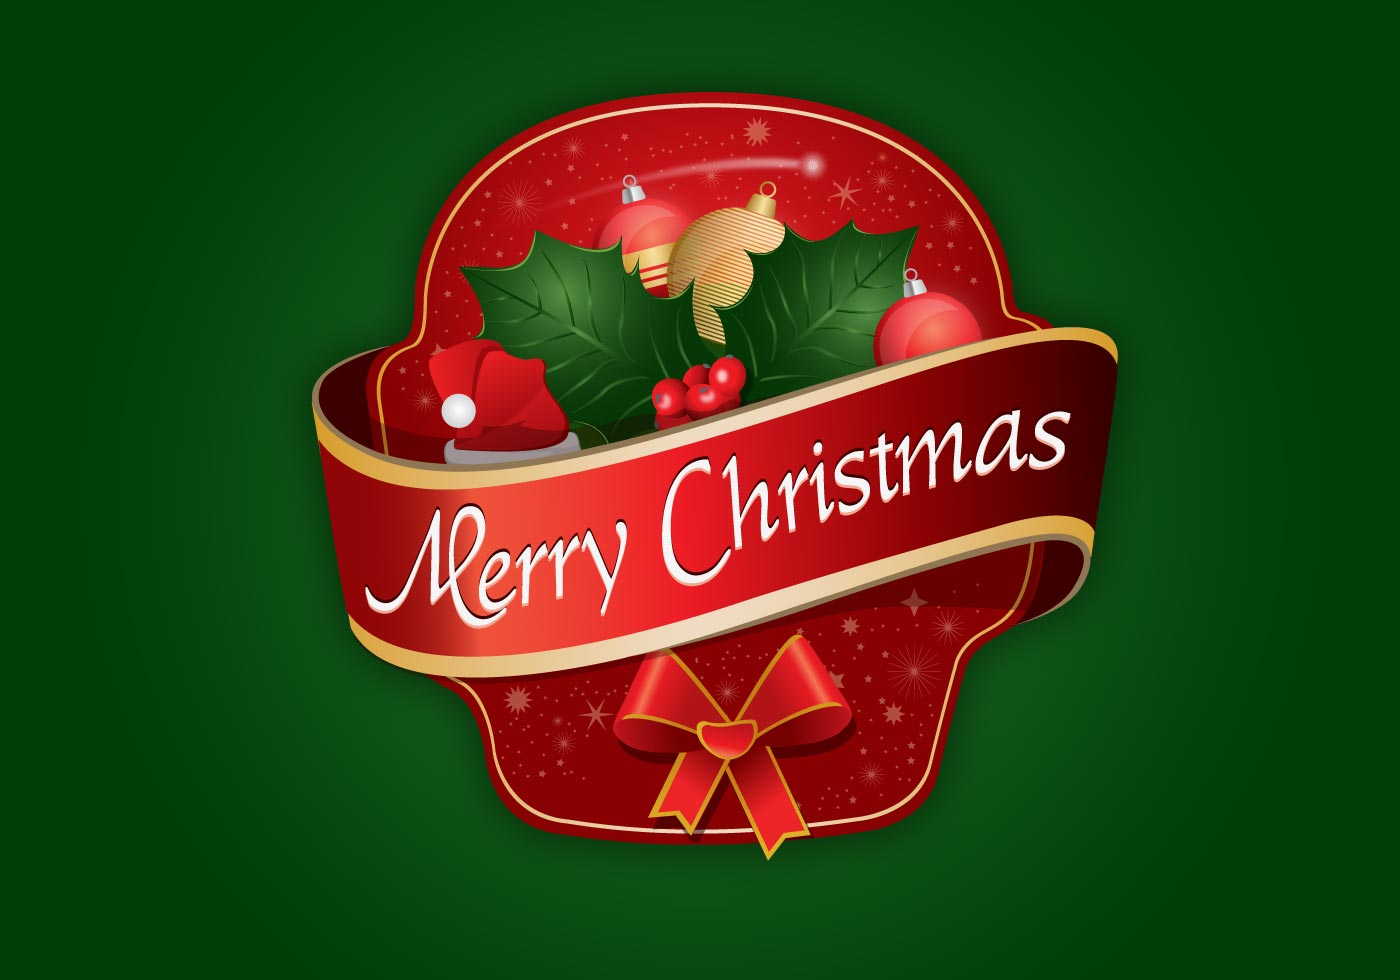 merry christmas label logo download free vector art stock graphics images - Merry Christmas Logos